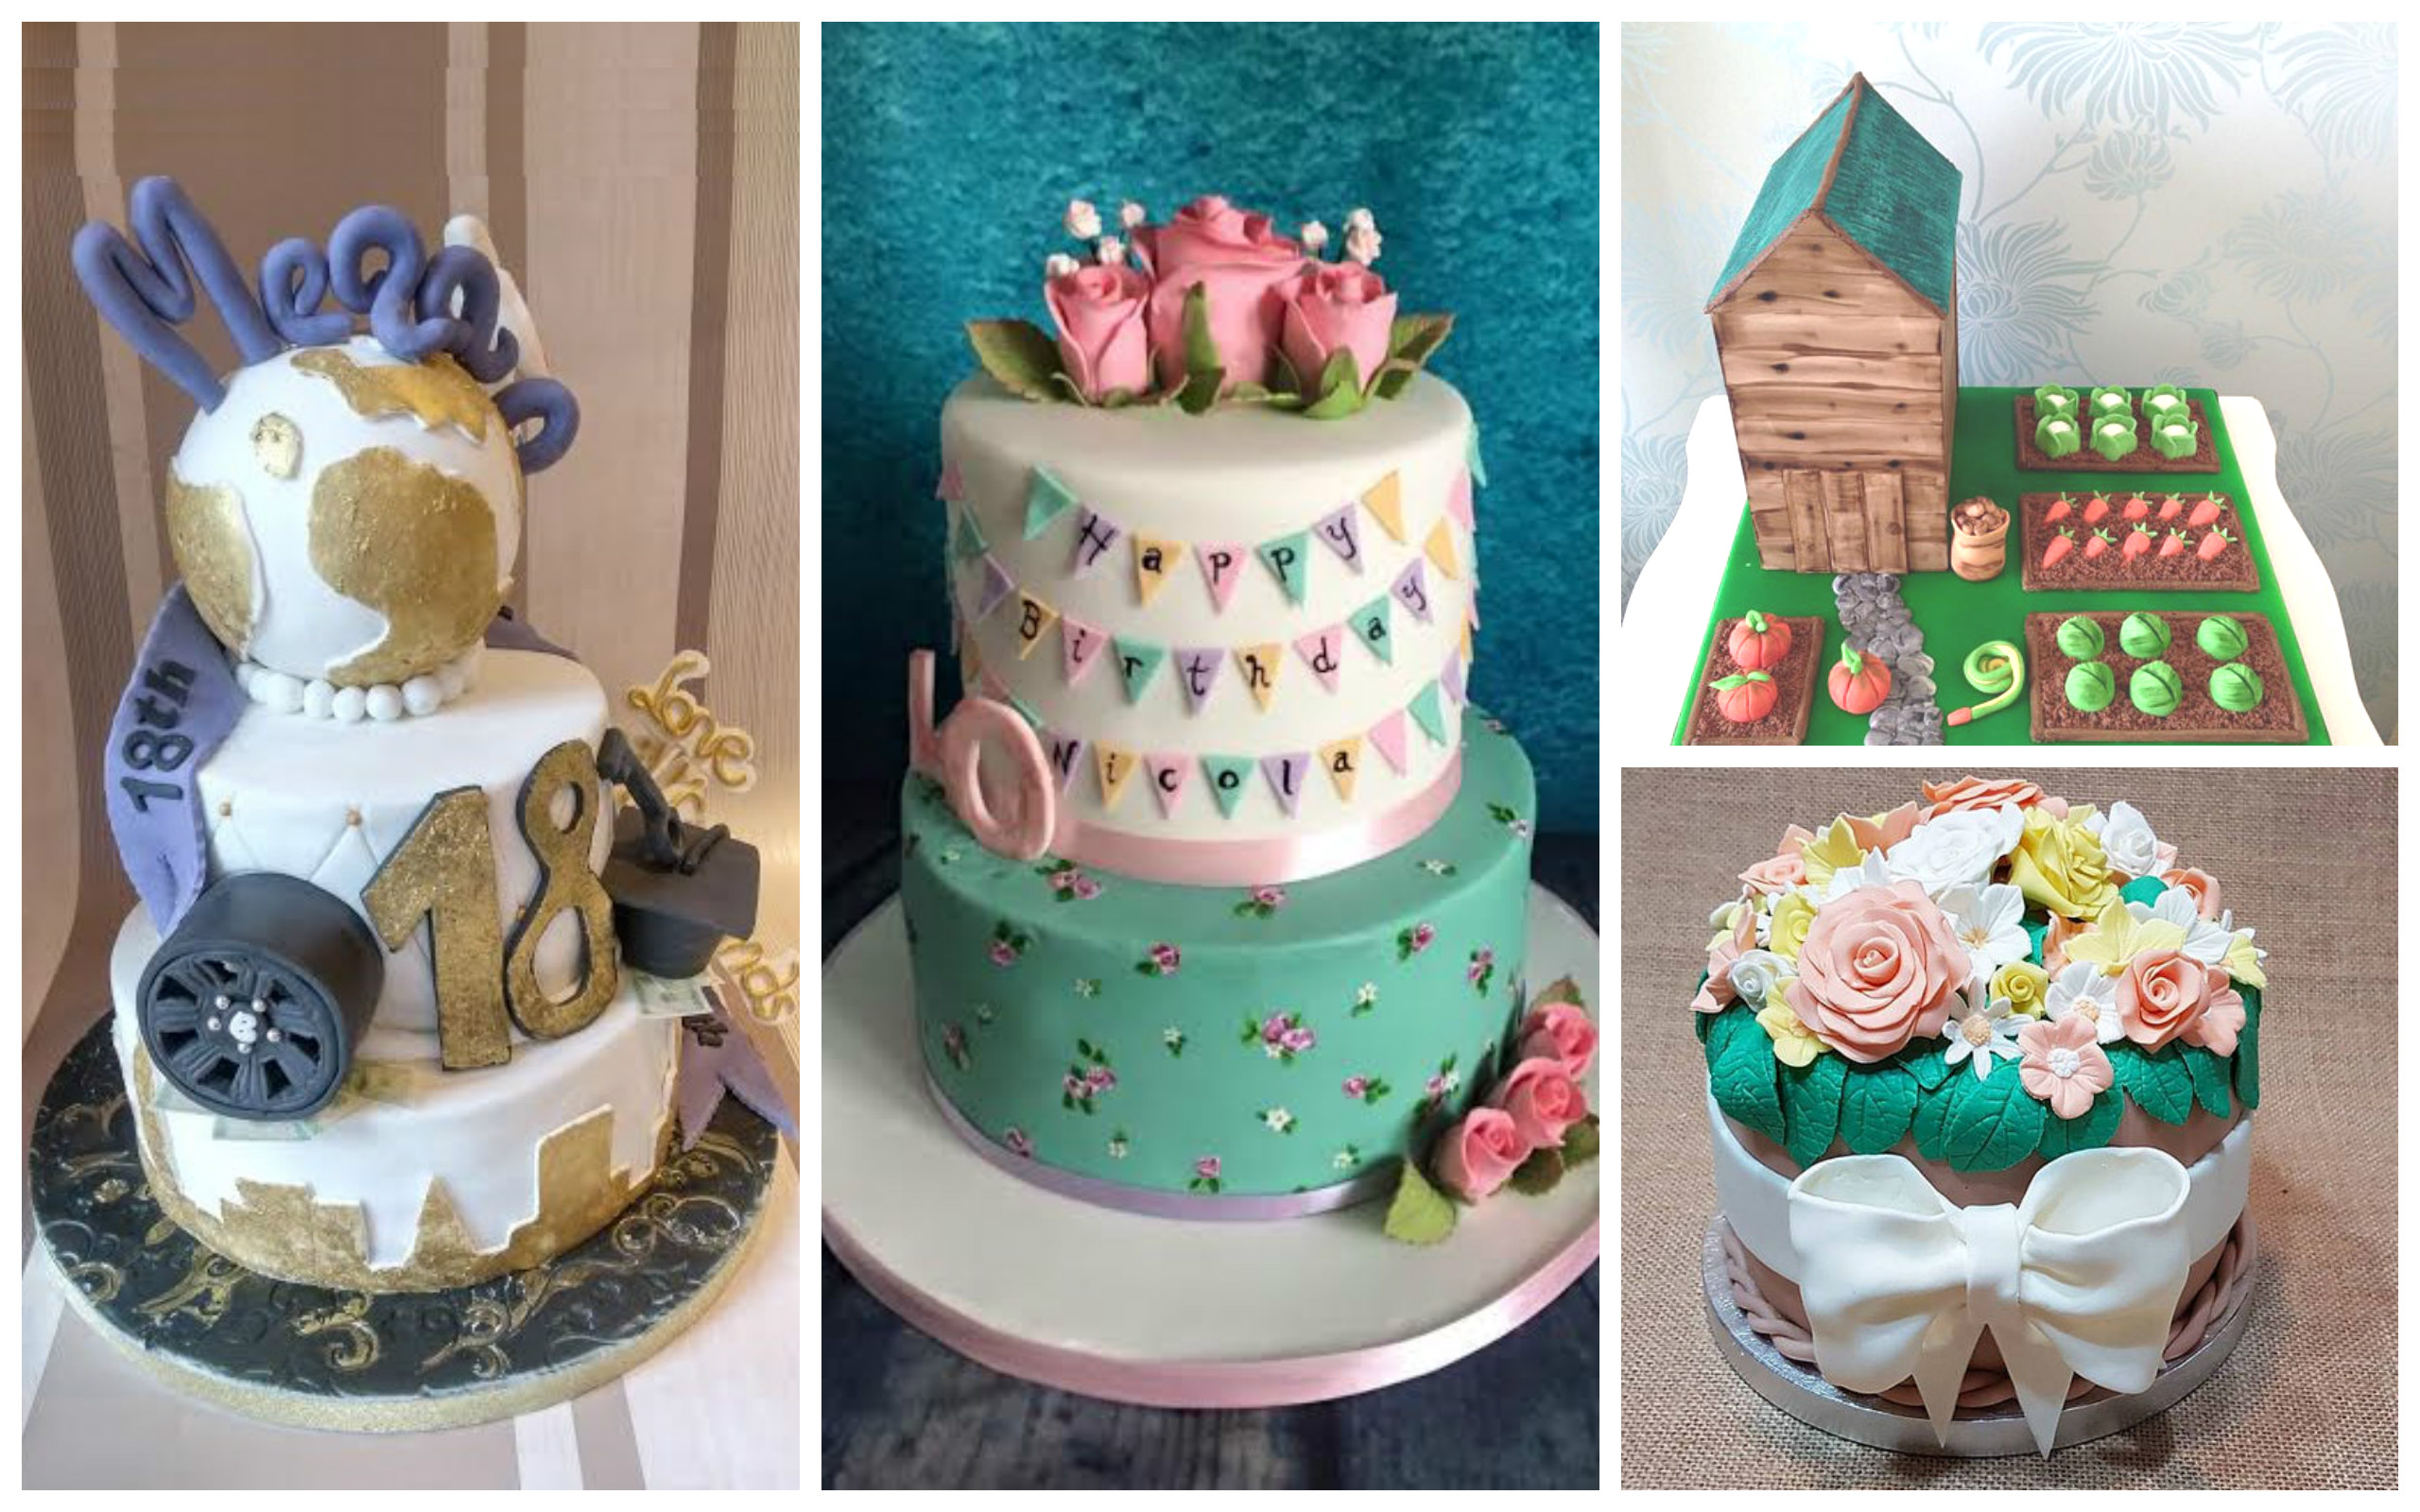 Cake Design Competition : Competition: Artist of the World s Finest Cake - Page 6 of 21